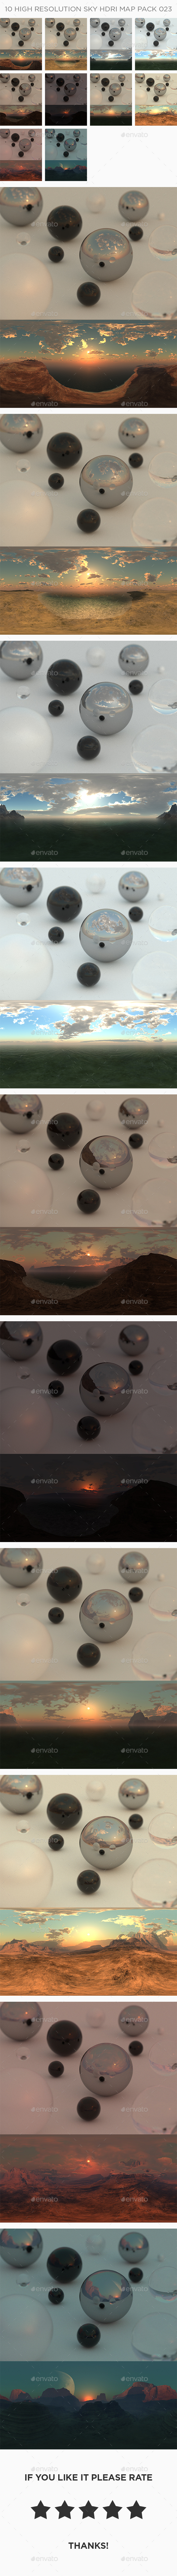 10 High Resolution Sky HDRi Maps Pack 023 - 3DOcean Item for Sale